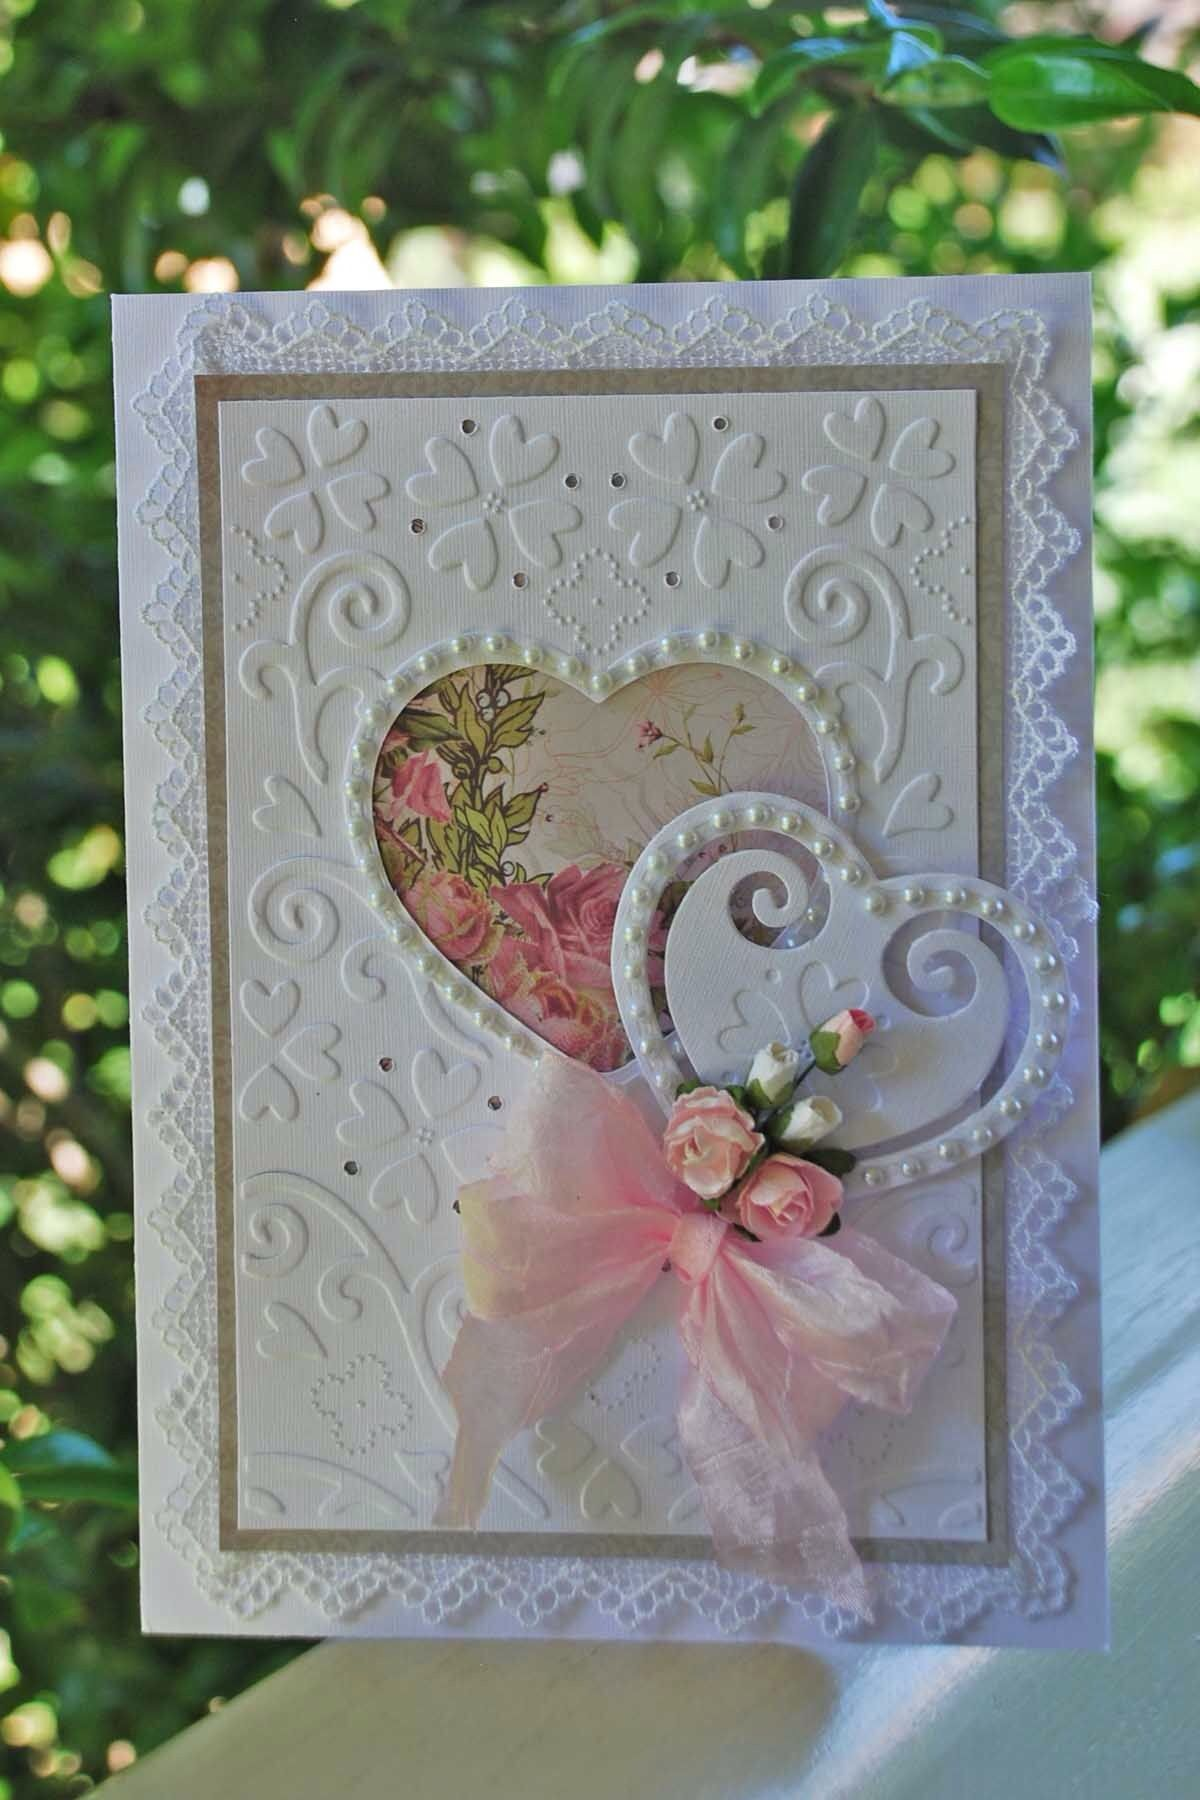 Pin by lisa cannell on pop up cards pinterest cards card ideas